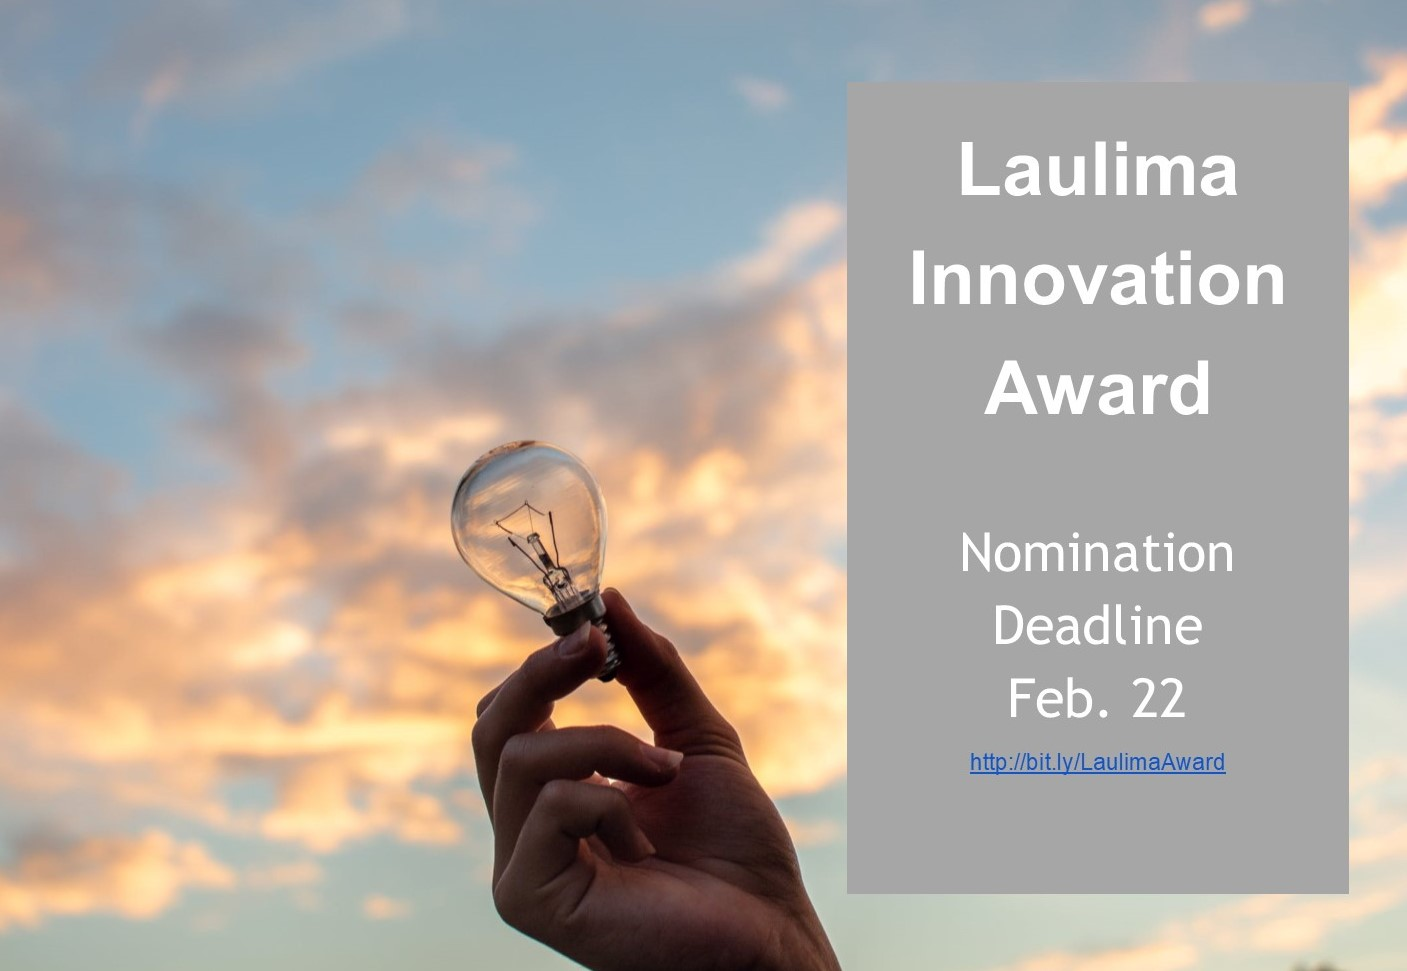 Photo of hand holding a light bulb up to the sky and text box with words Laulima Innovation Award and information about deadline and where to nominate someone